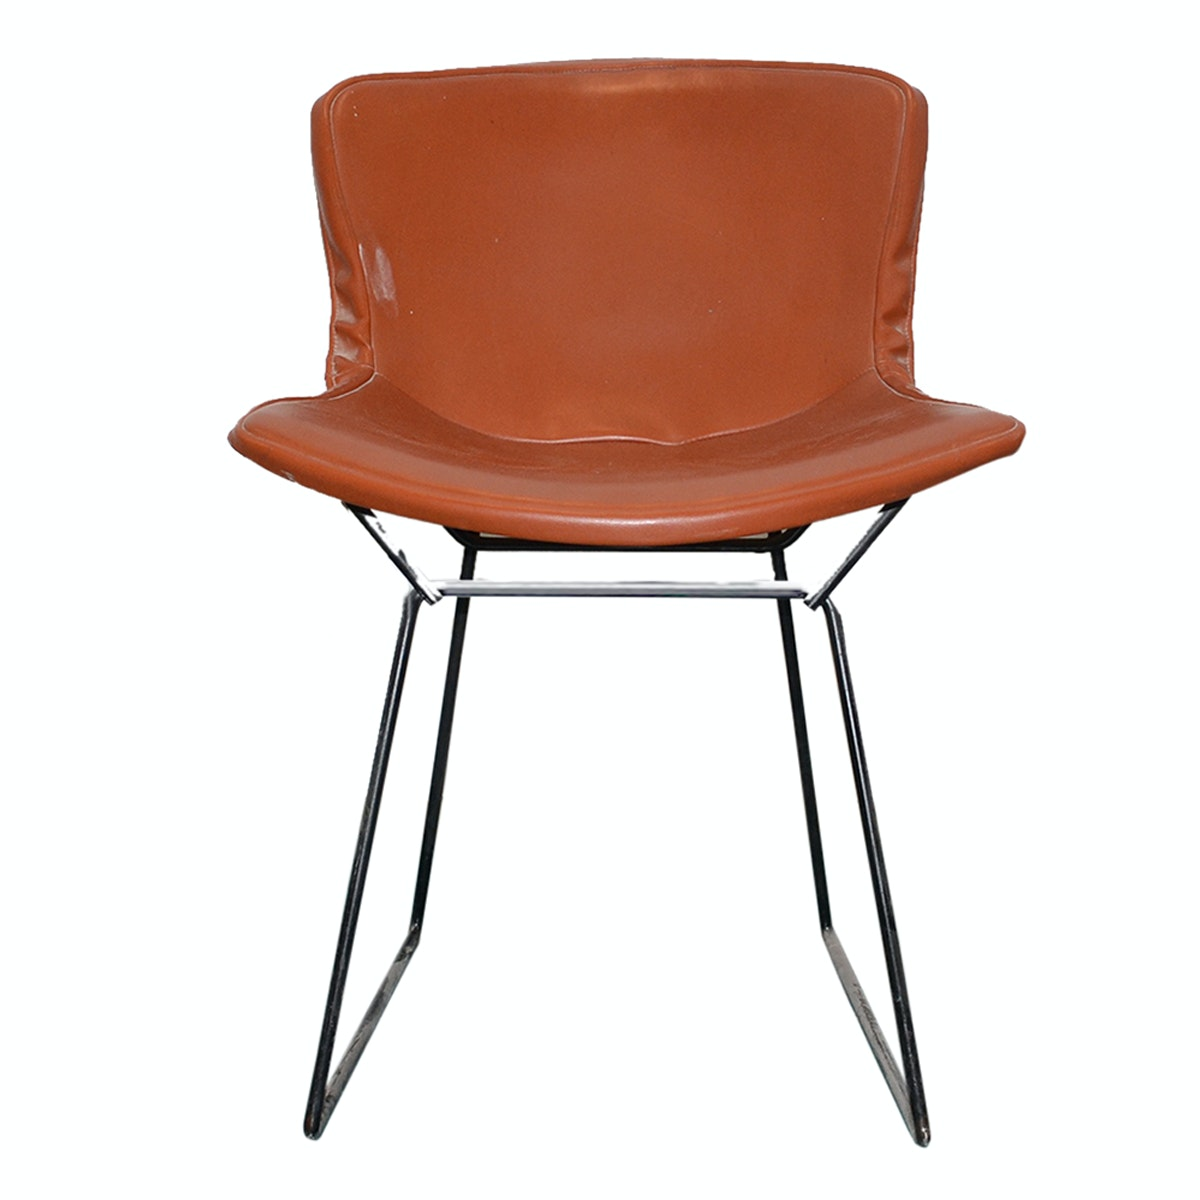 Metal and Leather Side Chair by Harry Bertoia for Knoll